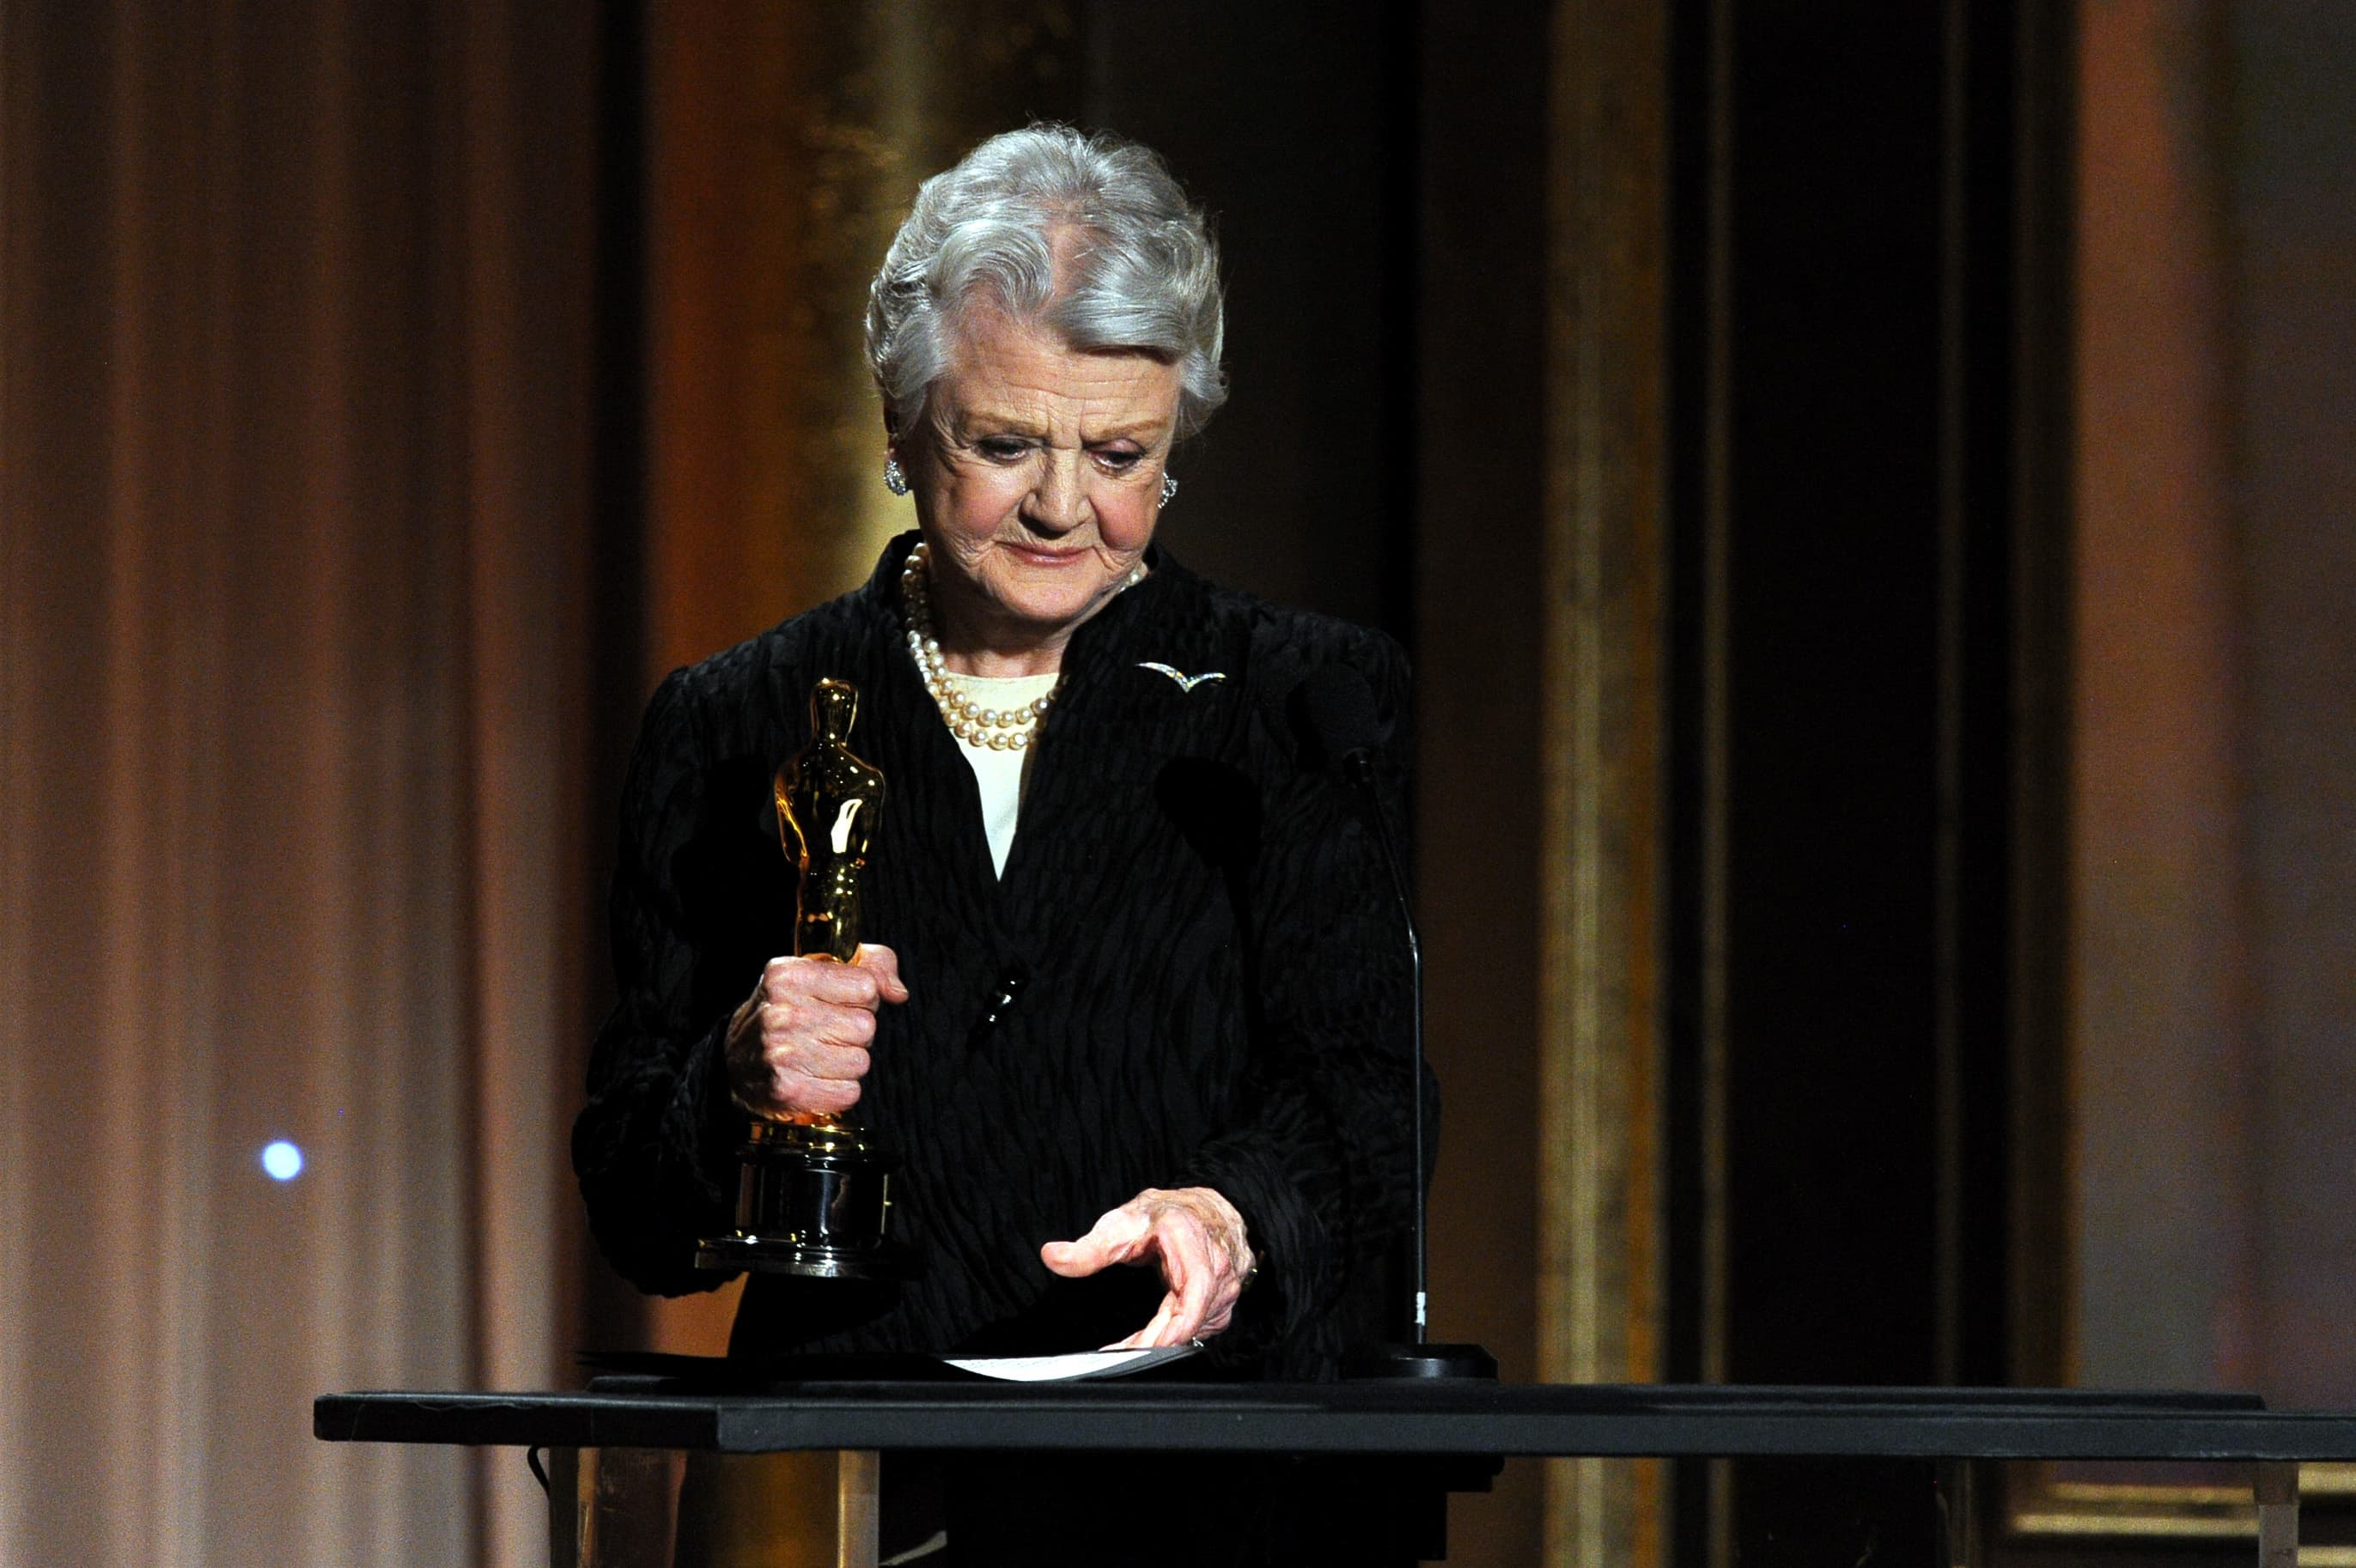 While Lansbury has been nominated for an Emmy many times, she never took the award home (Getty Images)